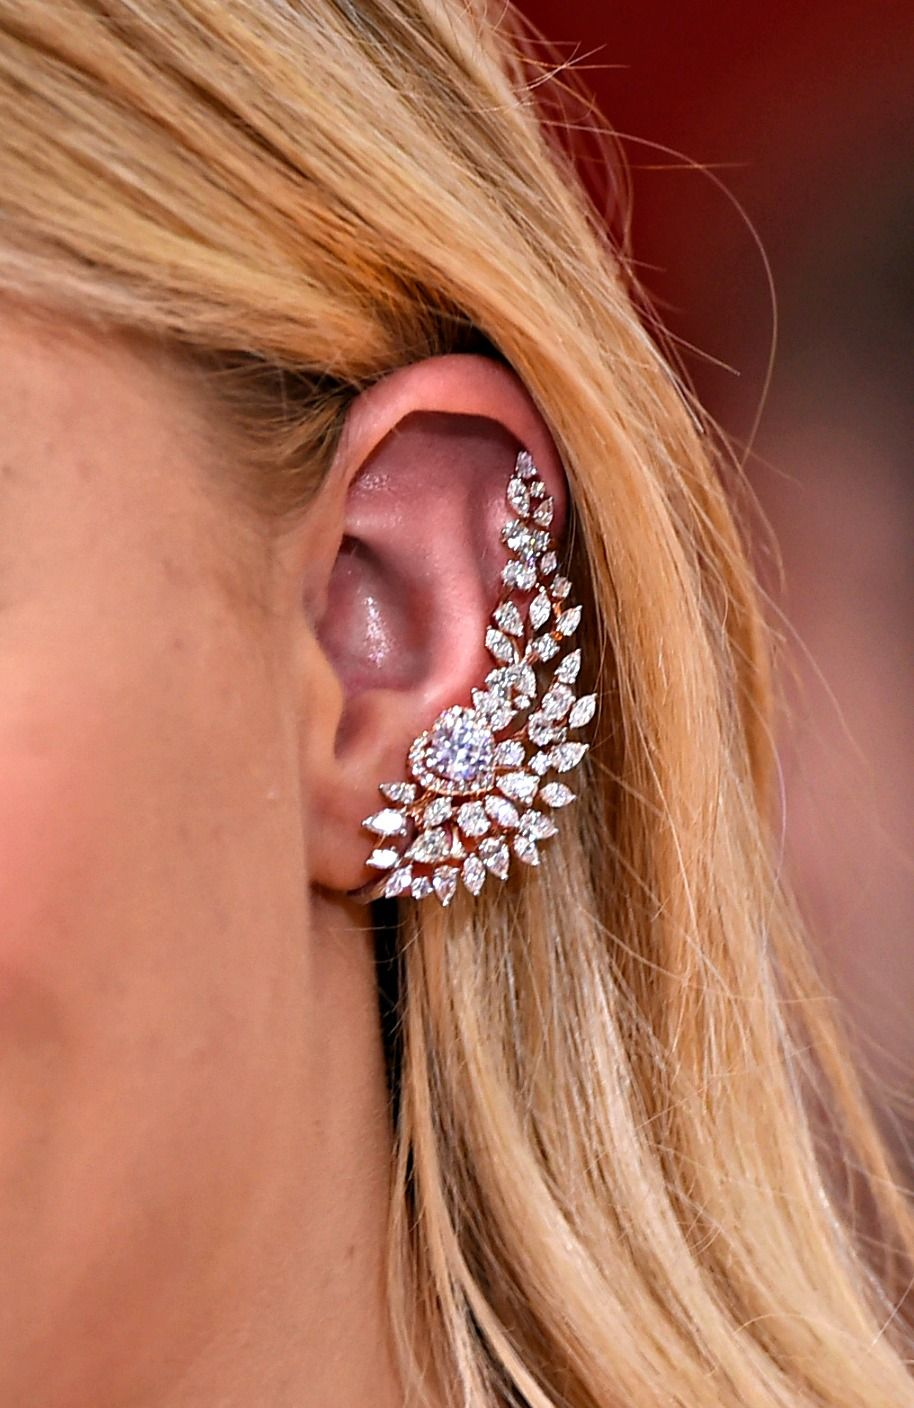 c06d442db638c A heart's desire. The Forevermark diamond ear cuff is one of a kind ...